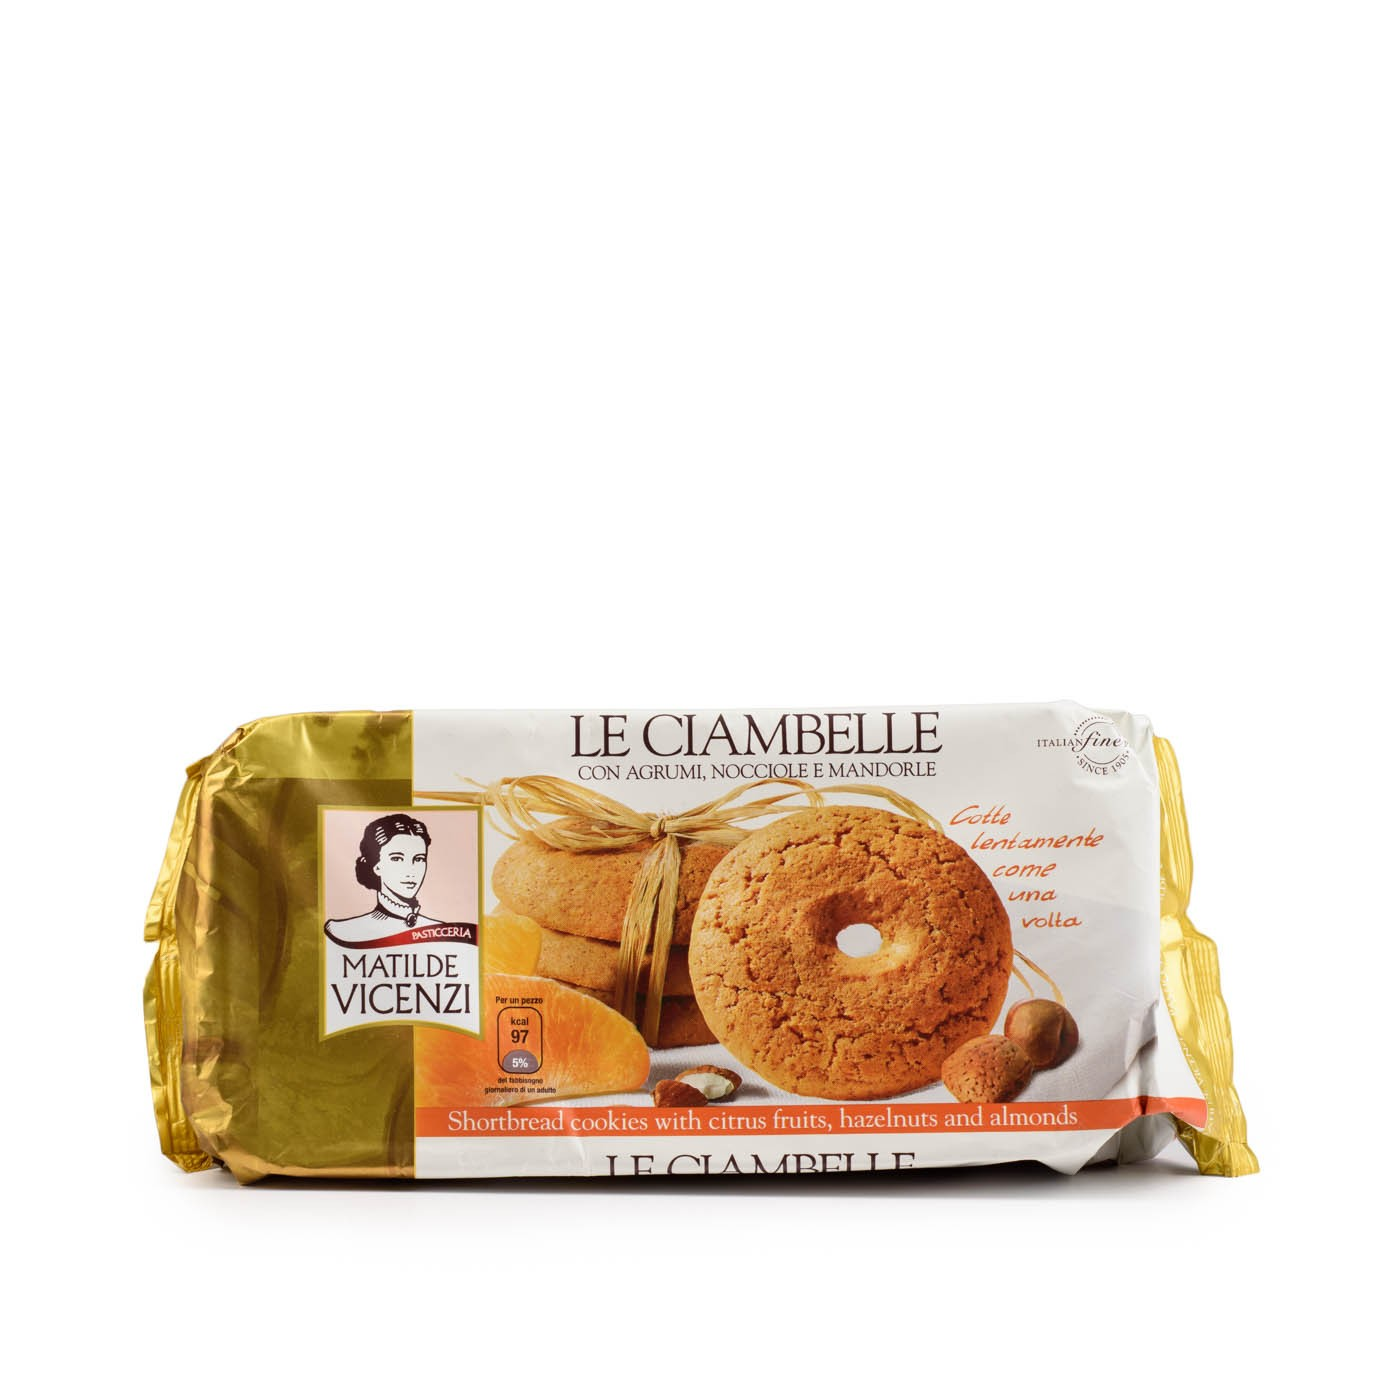 Ciambelle Cookies with Hazelnut, Almond, Fruit 7.05oz